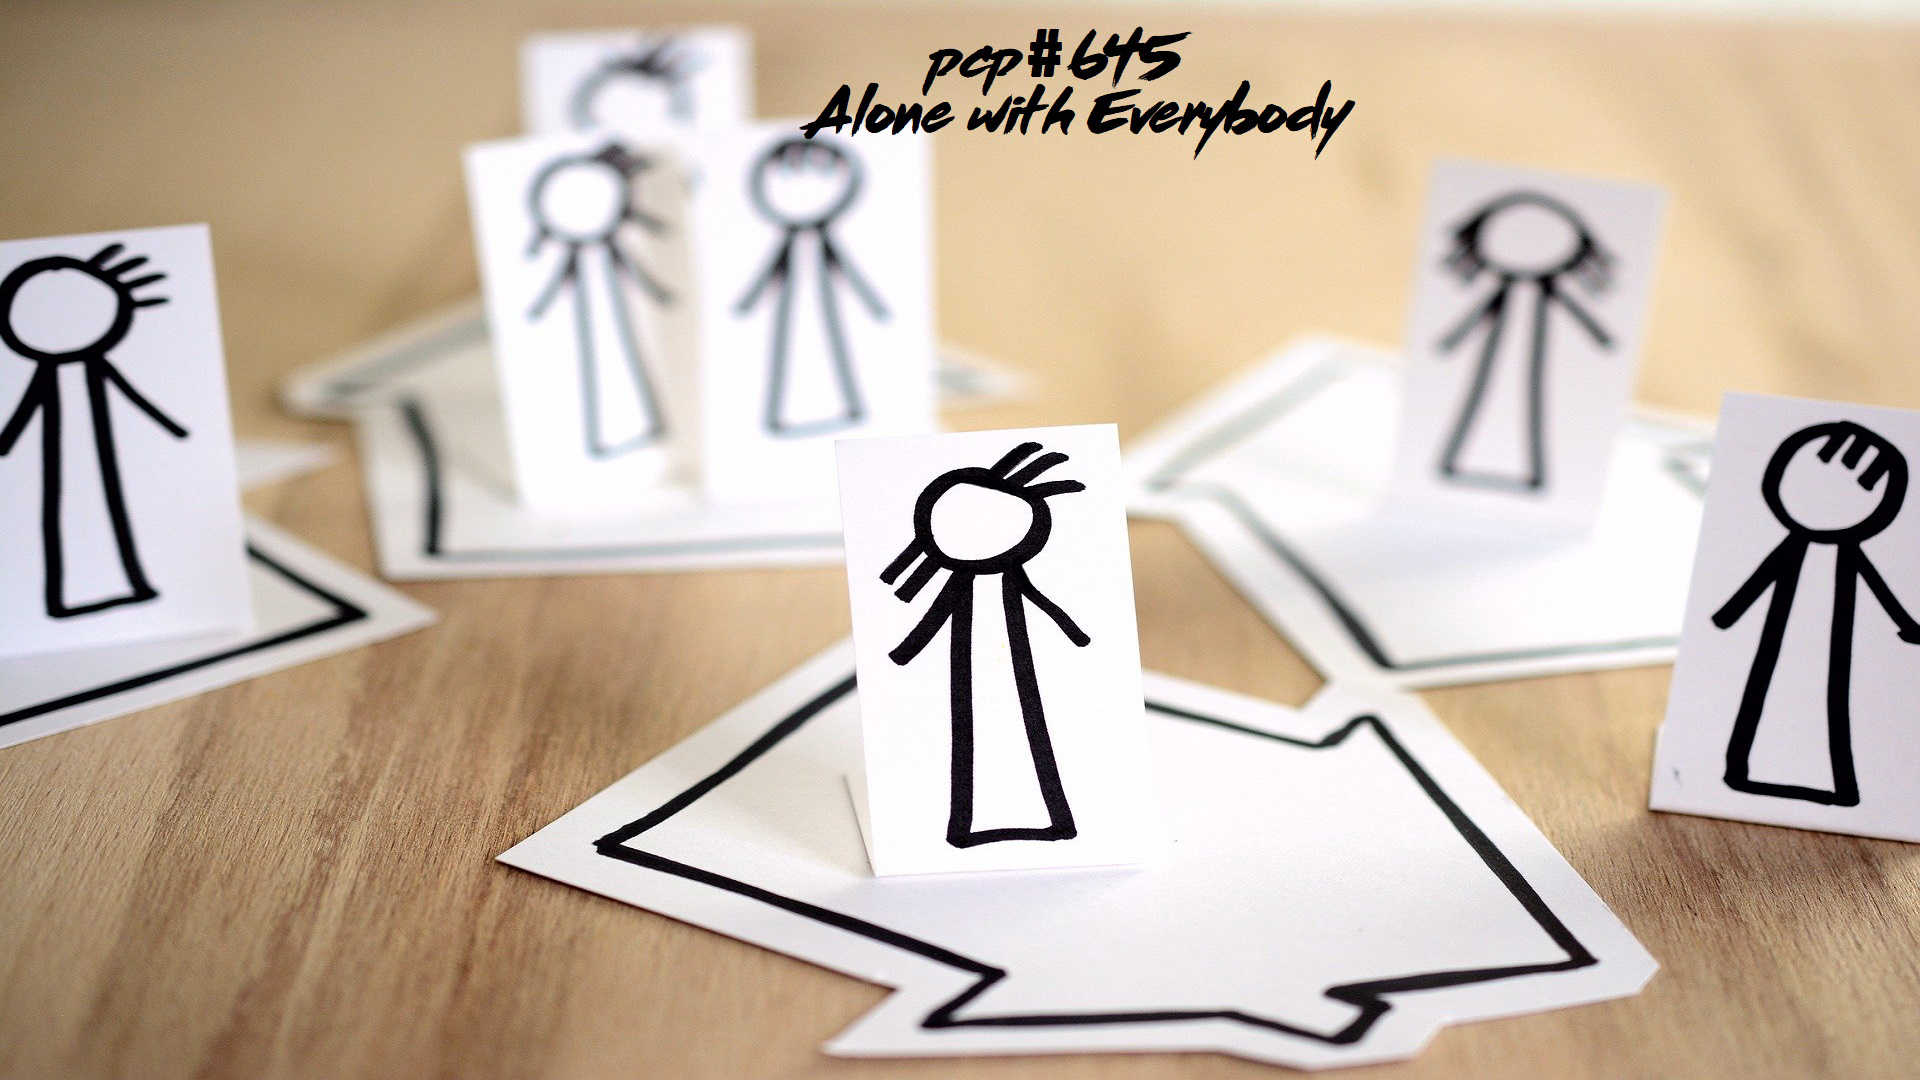 PCP#645... Alone With Everybody....